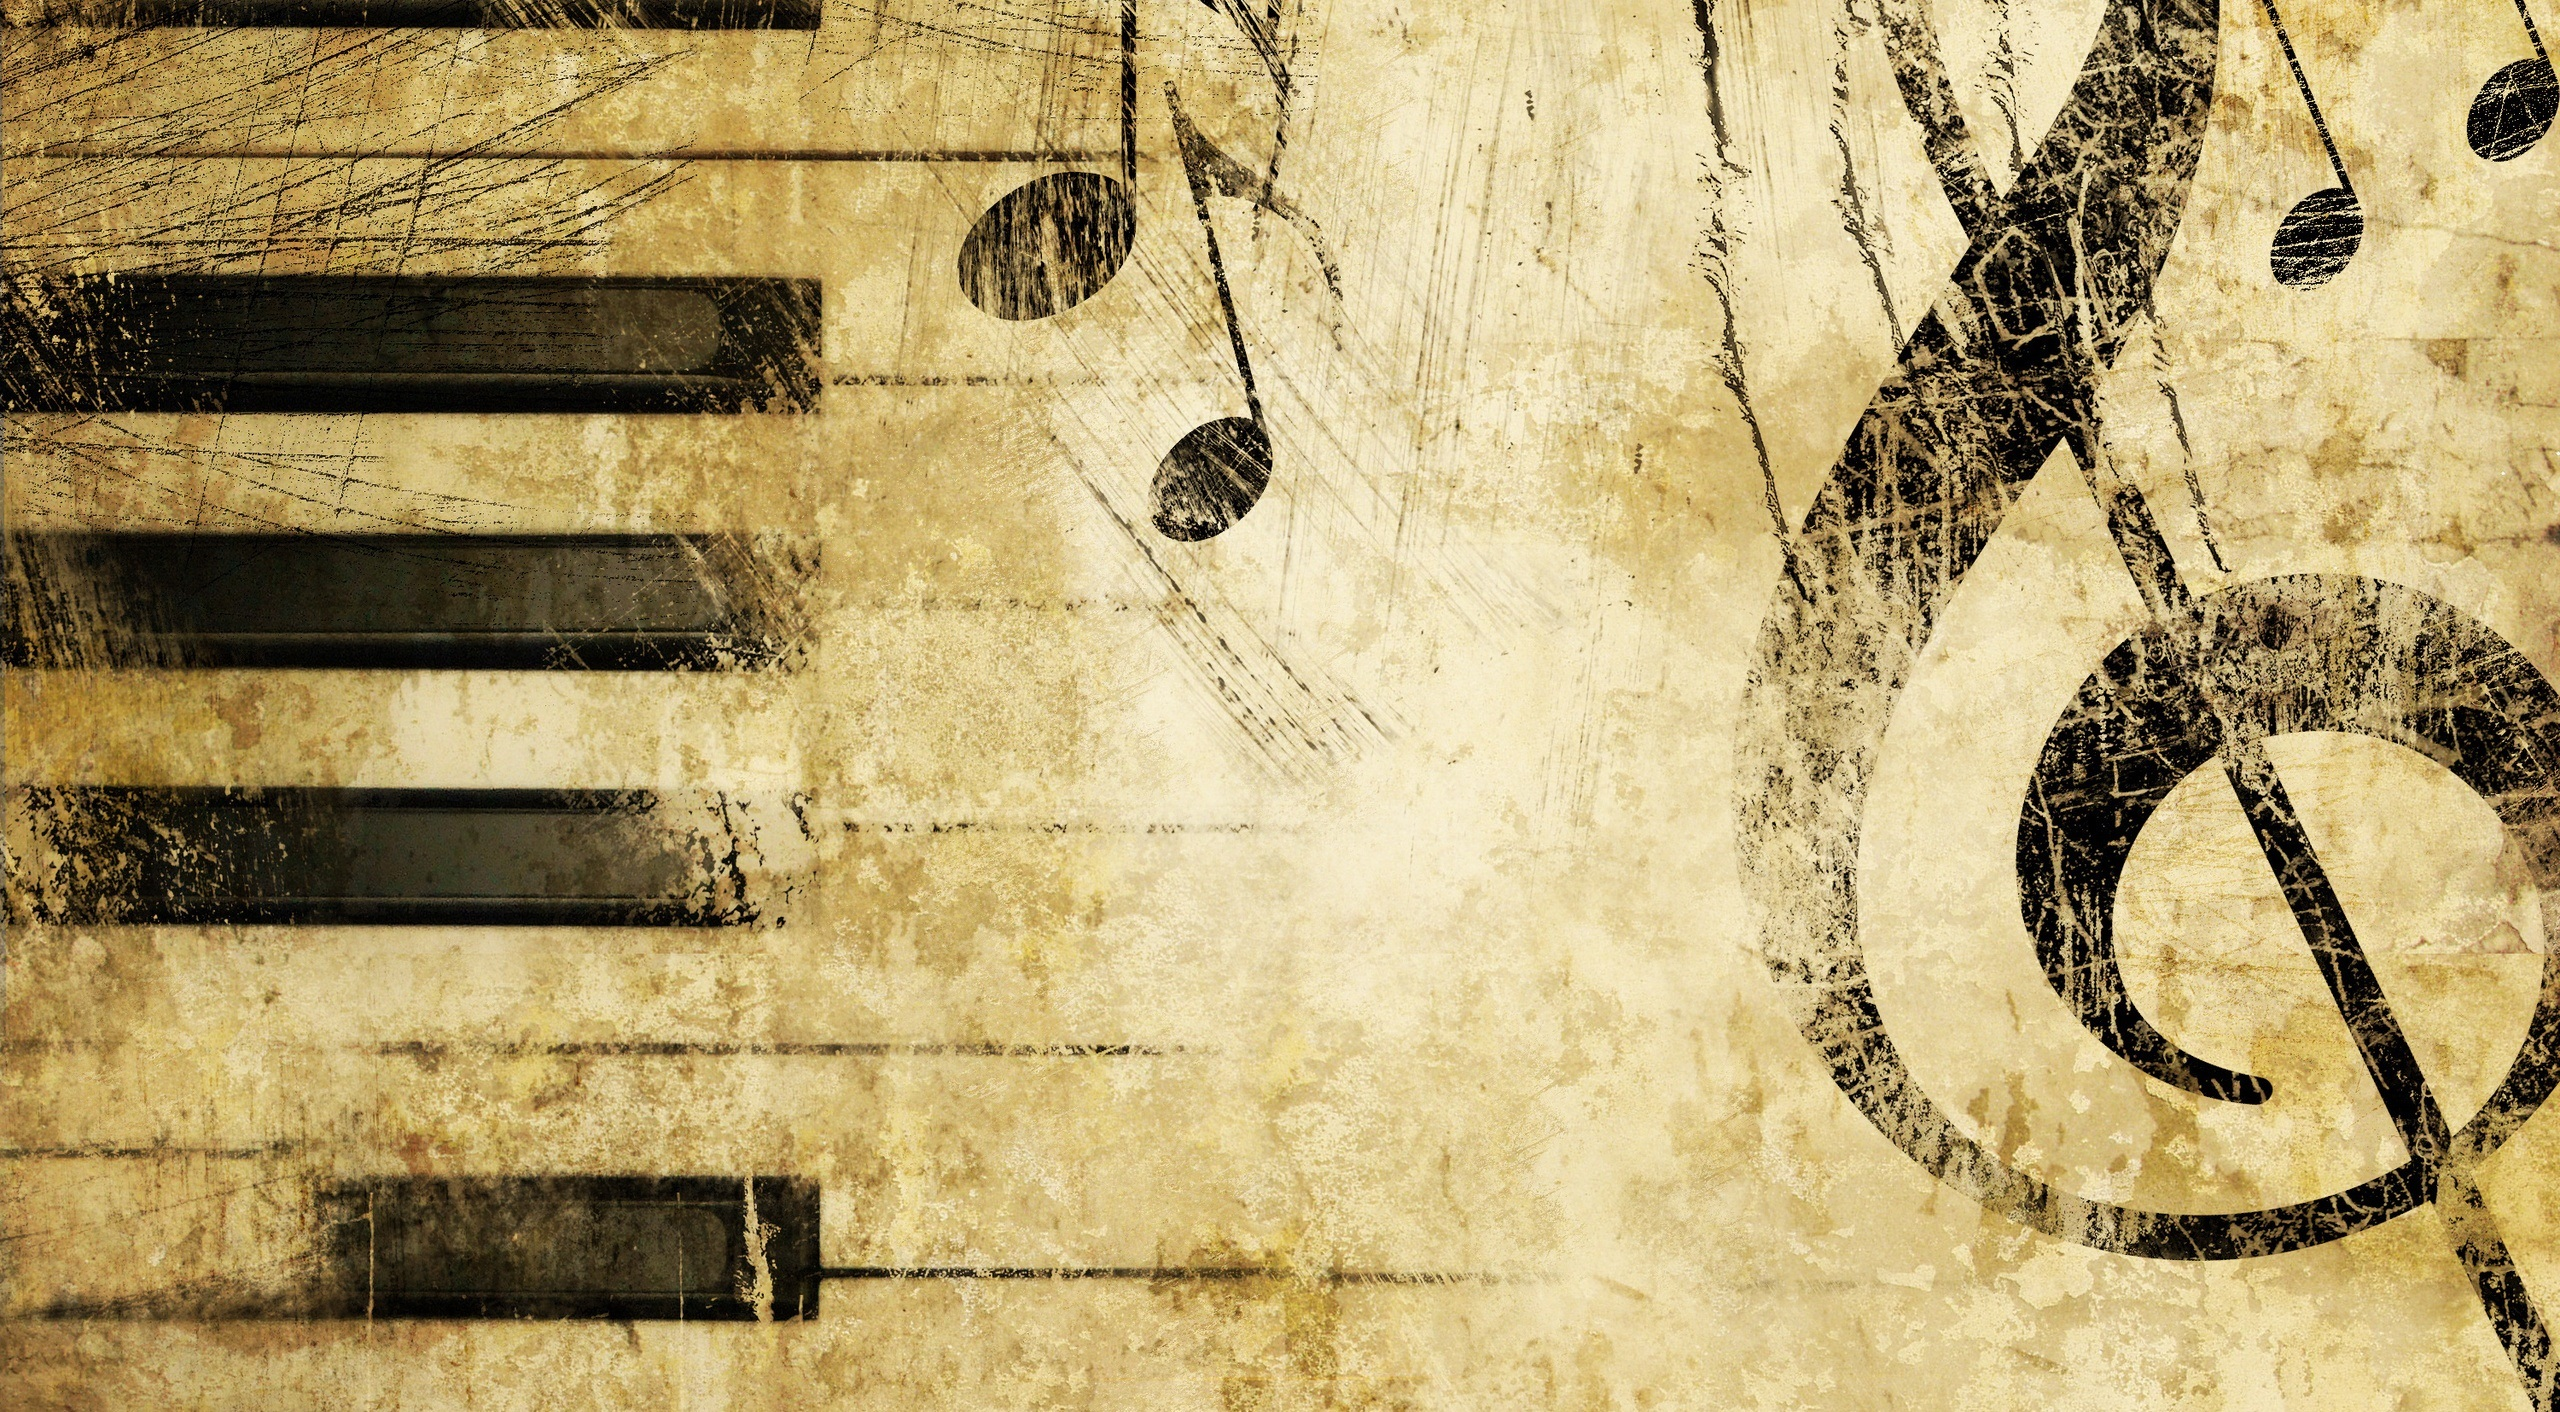 old_music_score_background-wallpaper-2560x1440